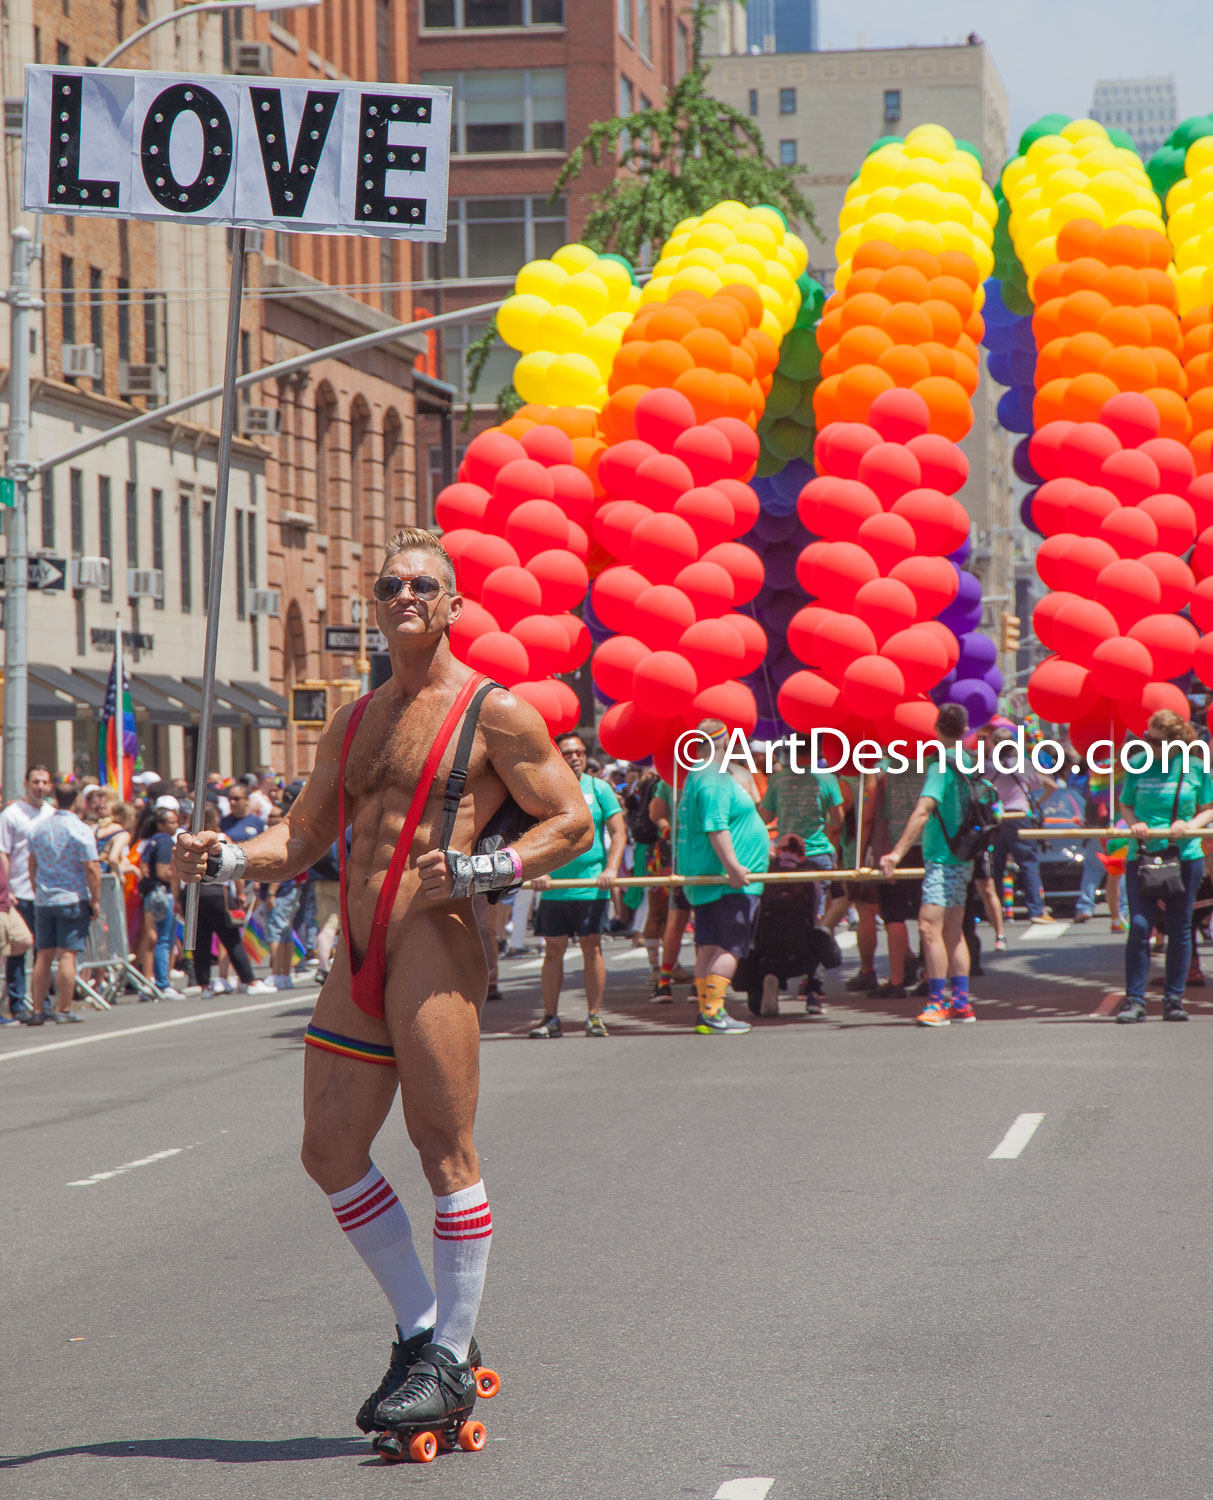 6/24/2018. New York City - The NYC Pride March celebrated 49 years. Photo by ArtDesnudo.com